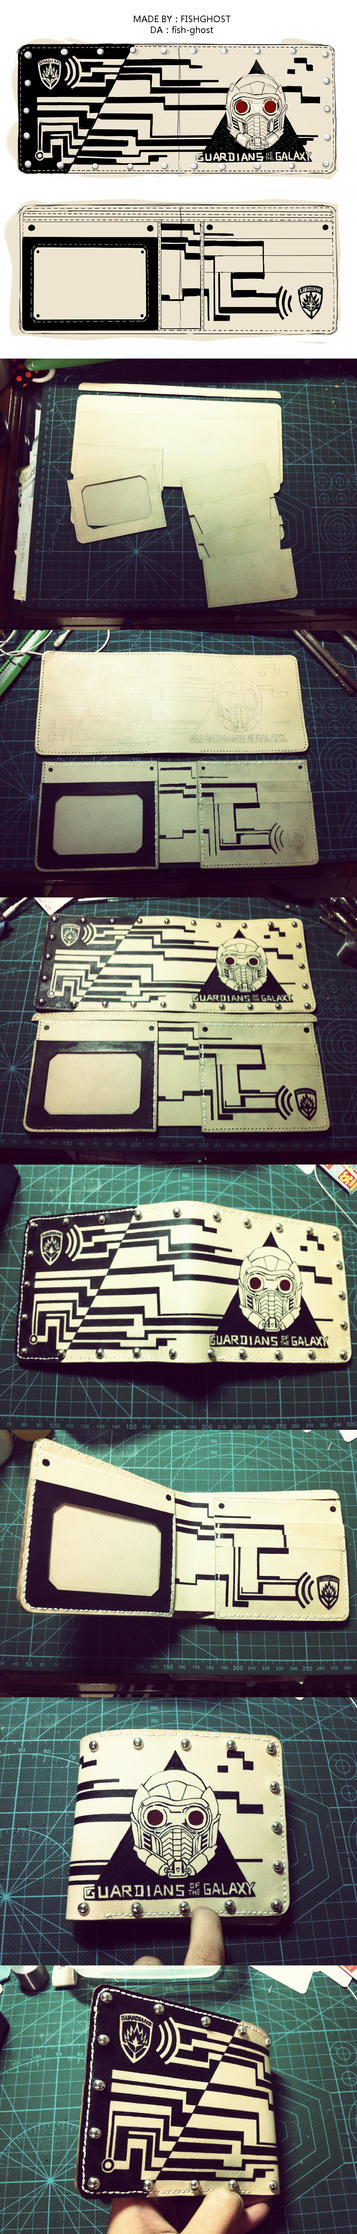 Guardians of the Galaxy wallet by fish-ghost